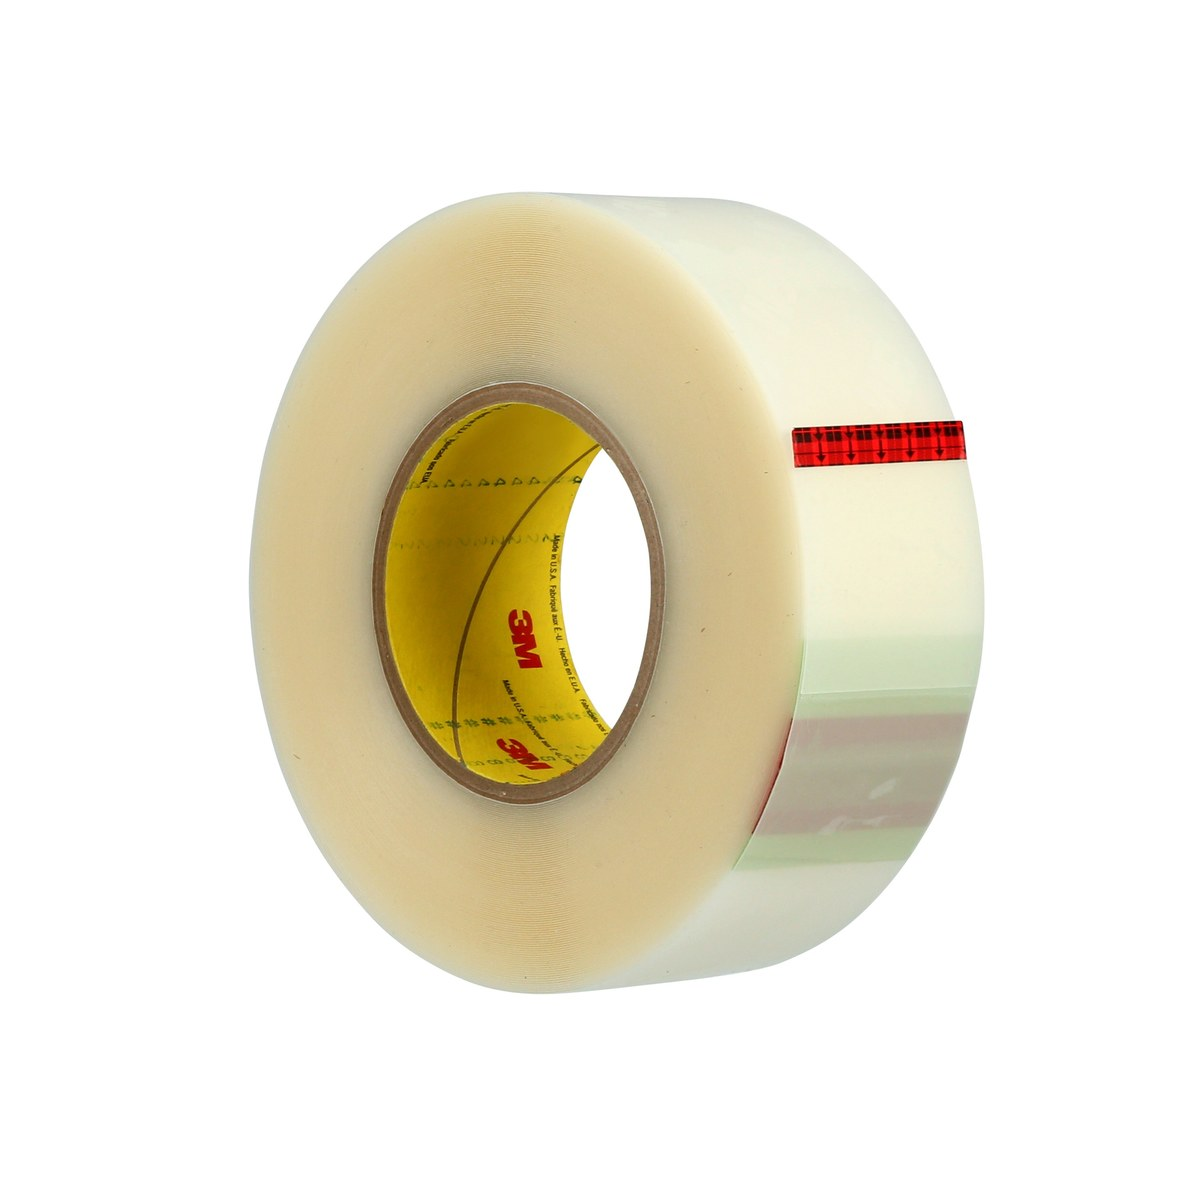 3m 8681hs clear aerospace tape 2 in width x 36 yd length 0 014 in thick 24989 [ 1200 x 1200 Pixel ]